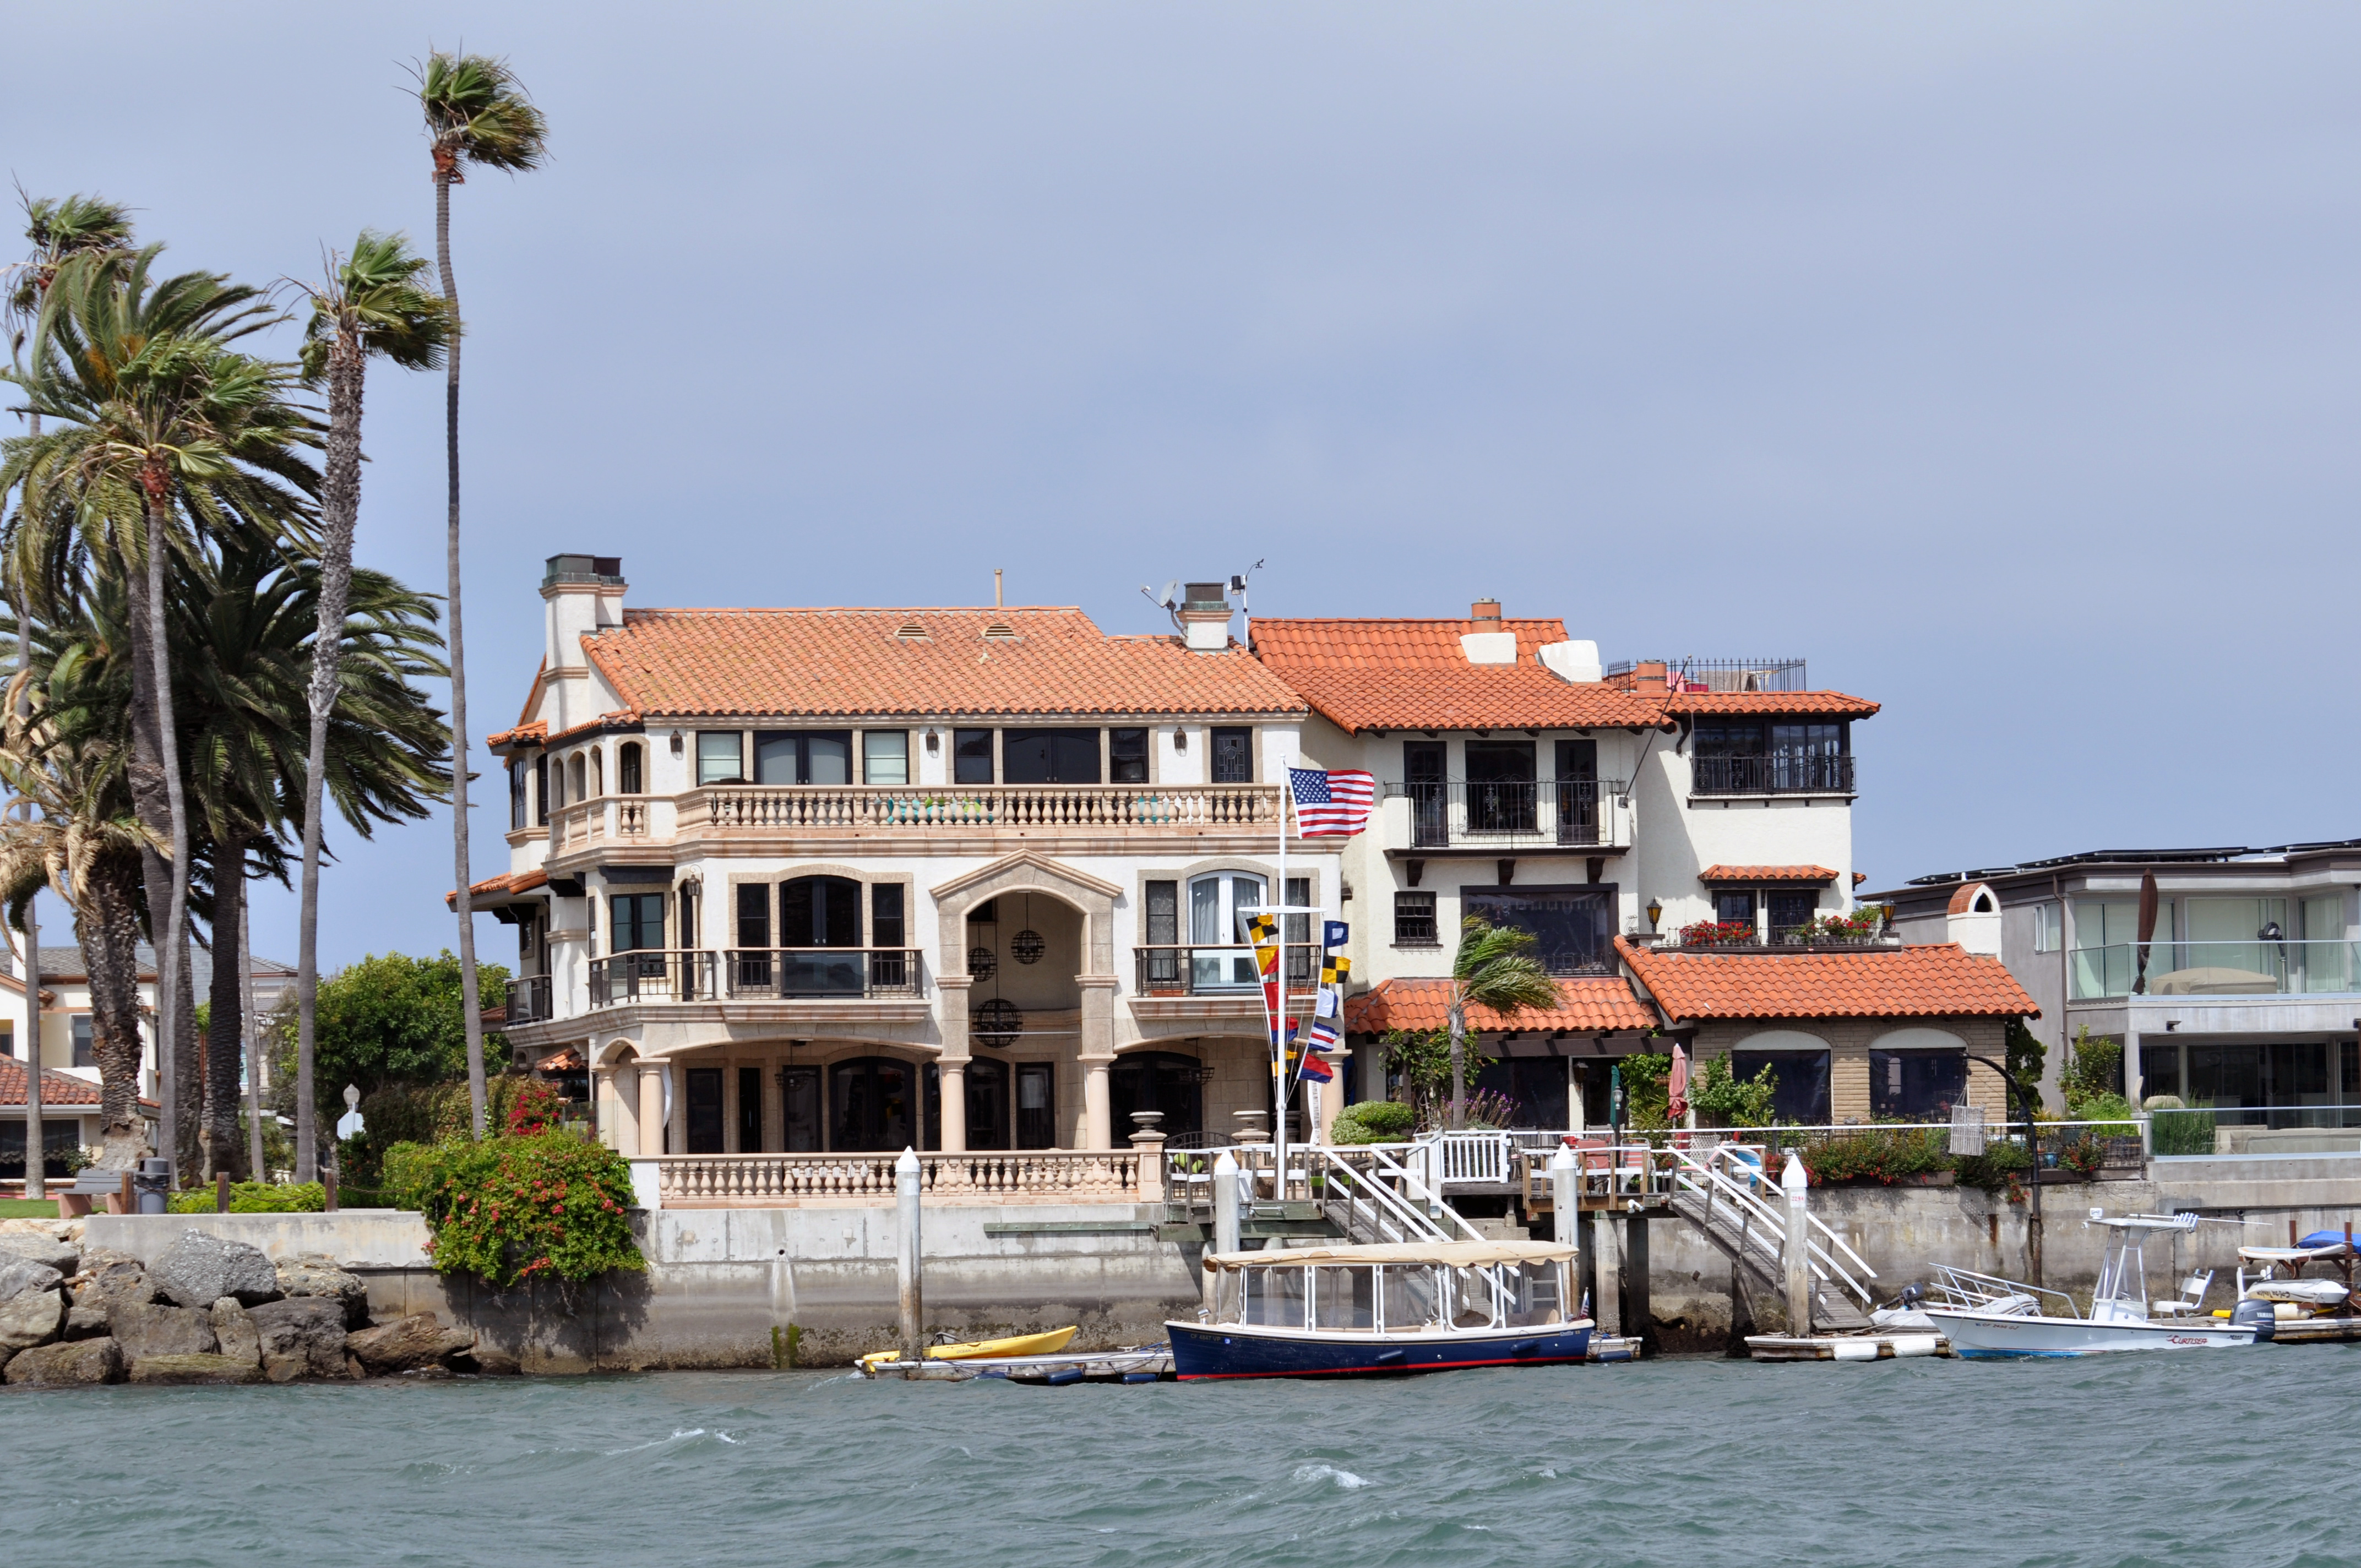 Harbor Island Homes For Sale Newport Beach